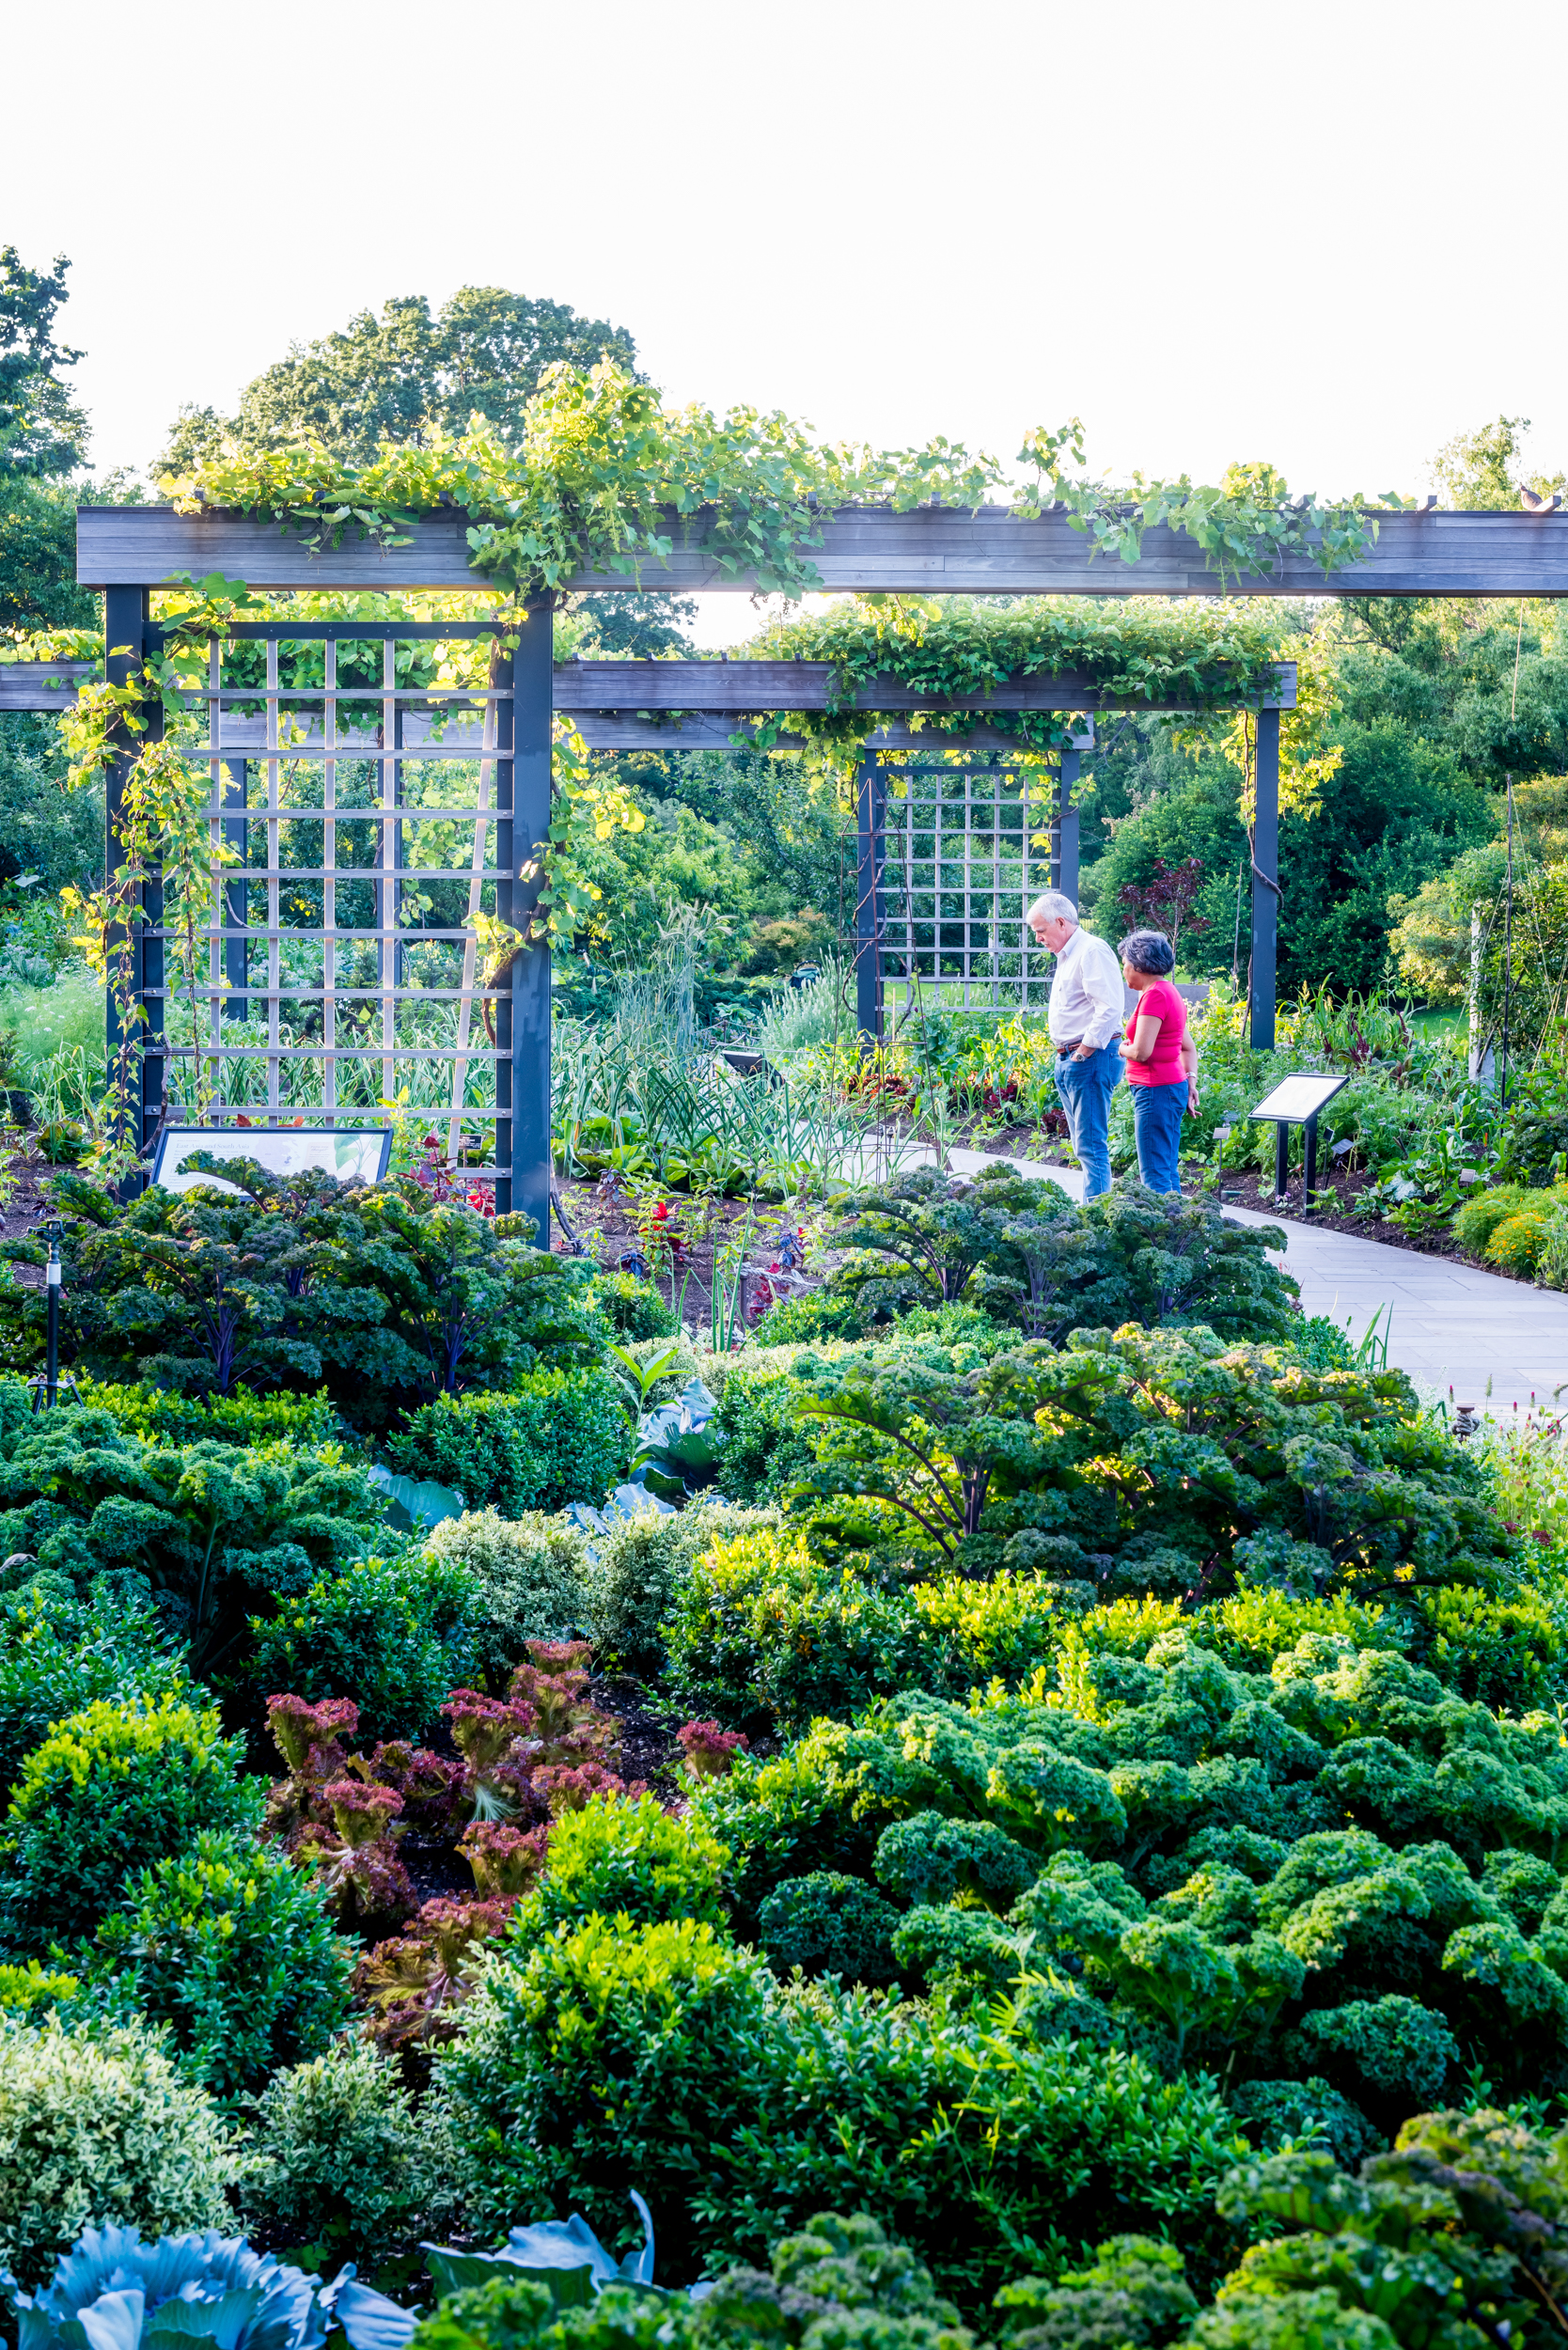 View of educational singage and arbors in Herb Garden